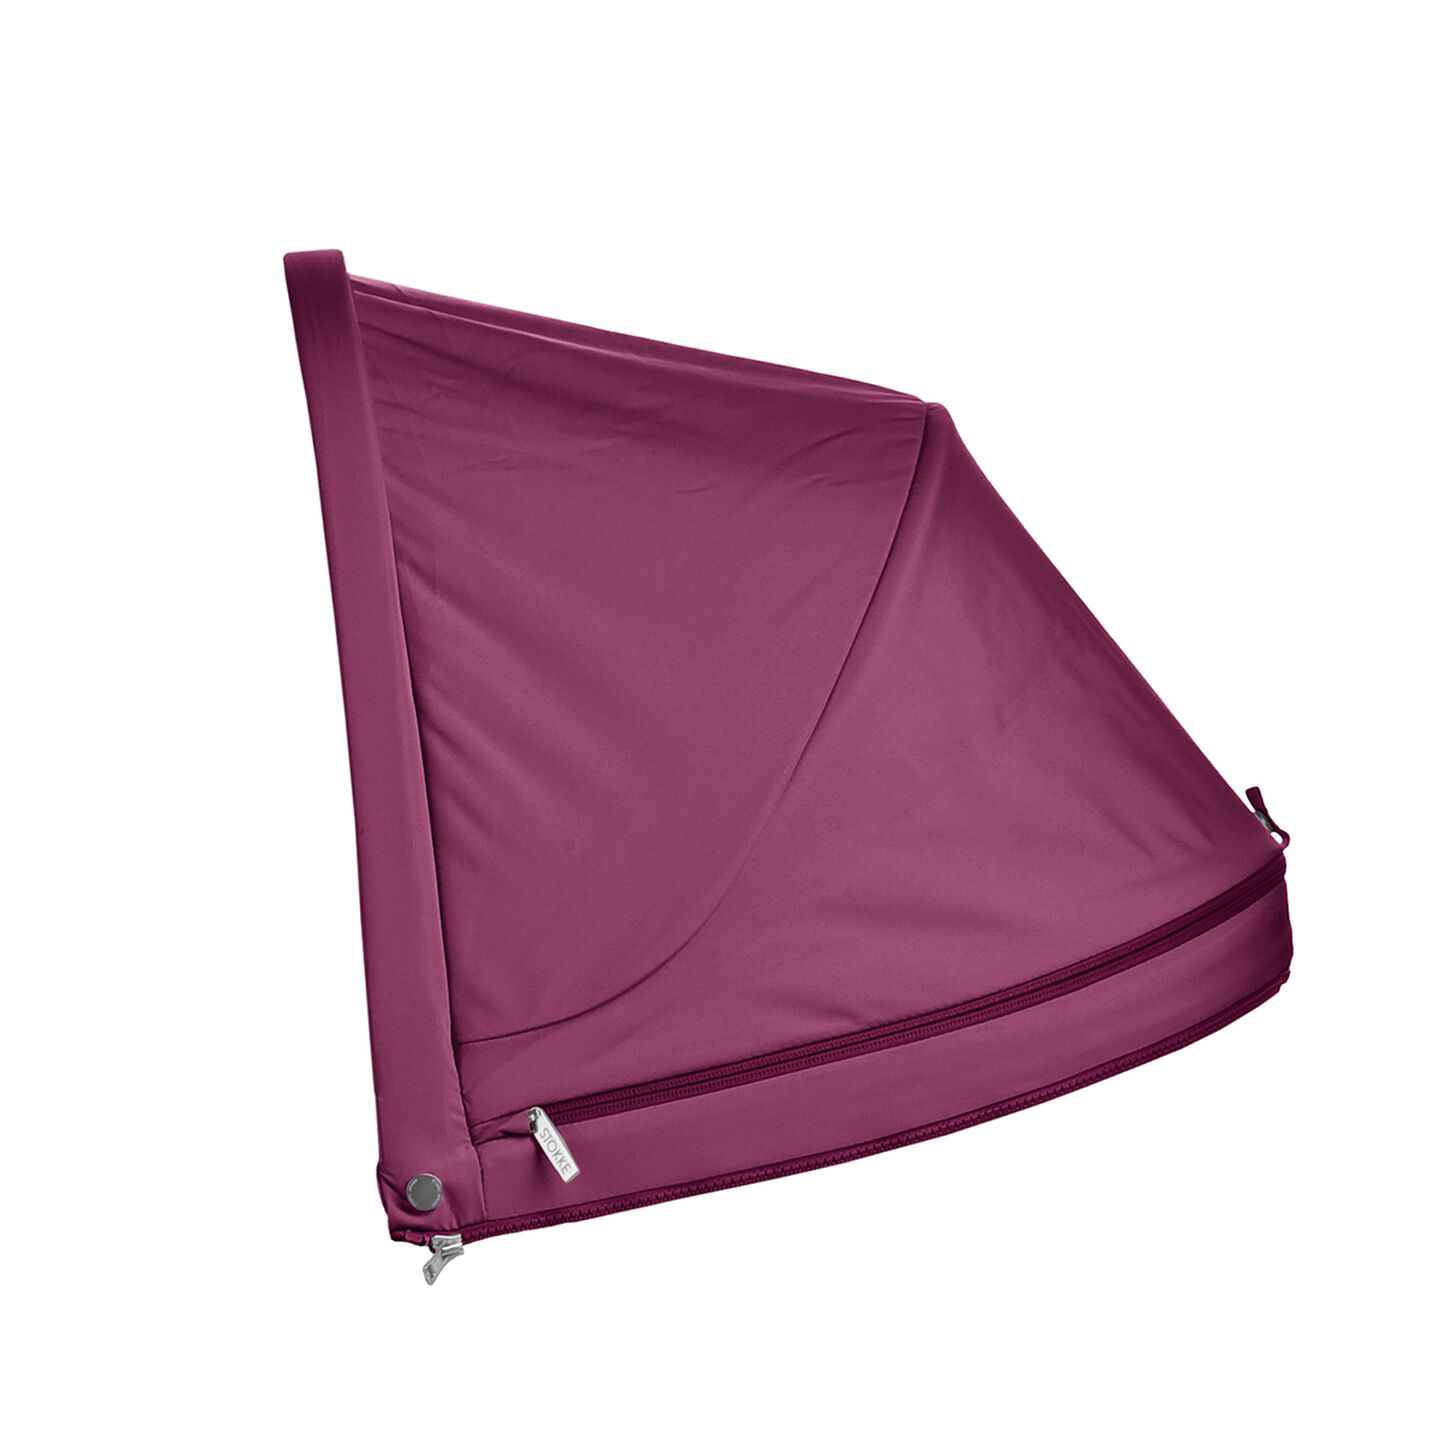 Stokke® Barnevognskaleche Purple, Purple, mainview view 2